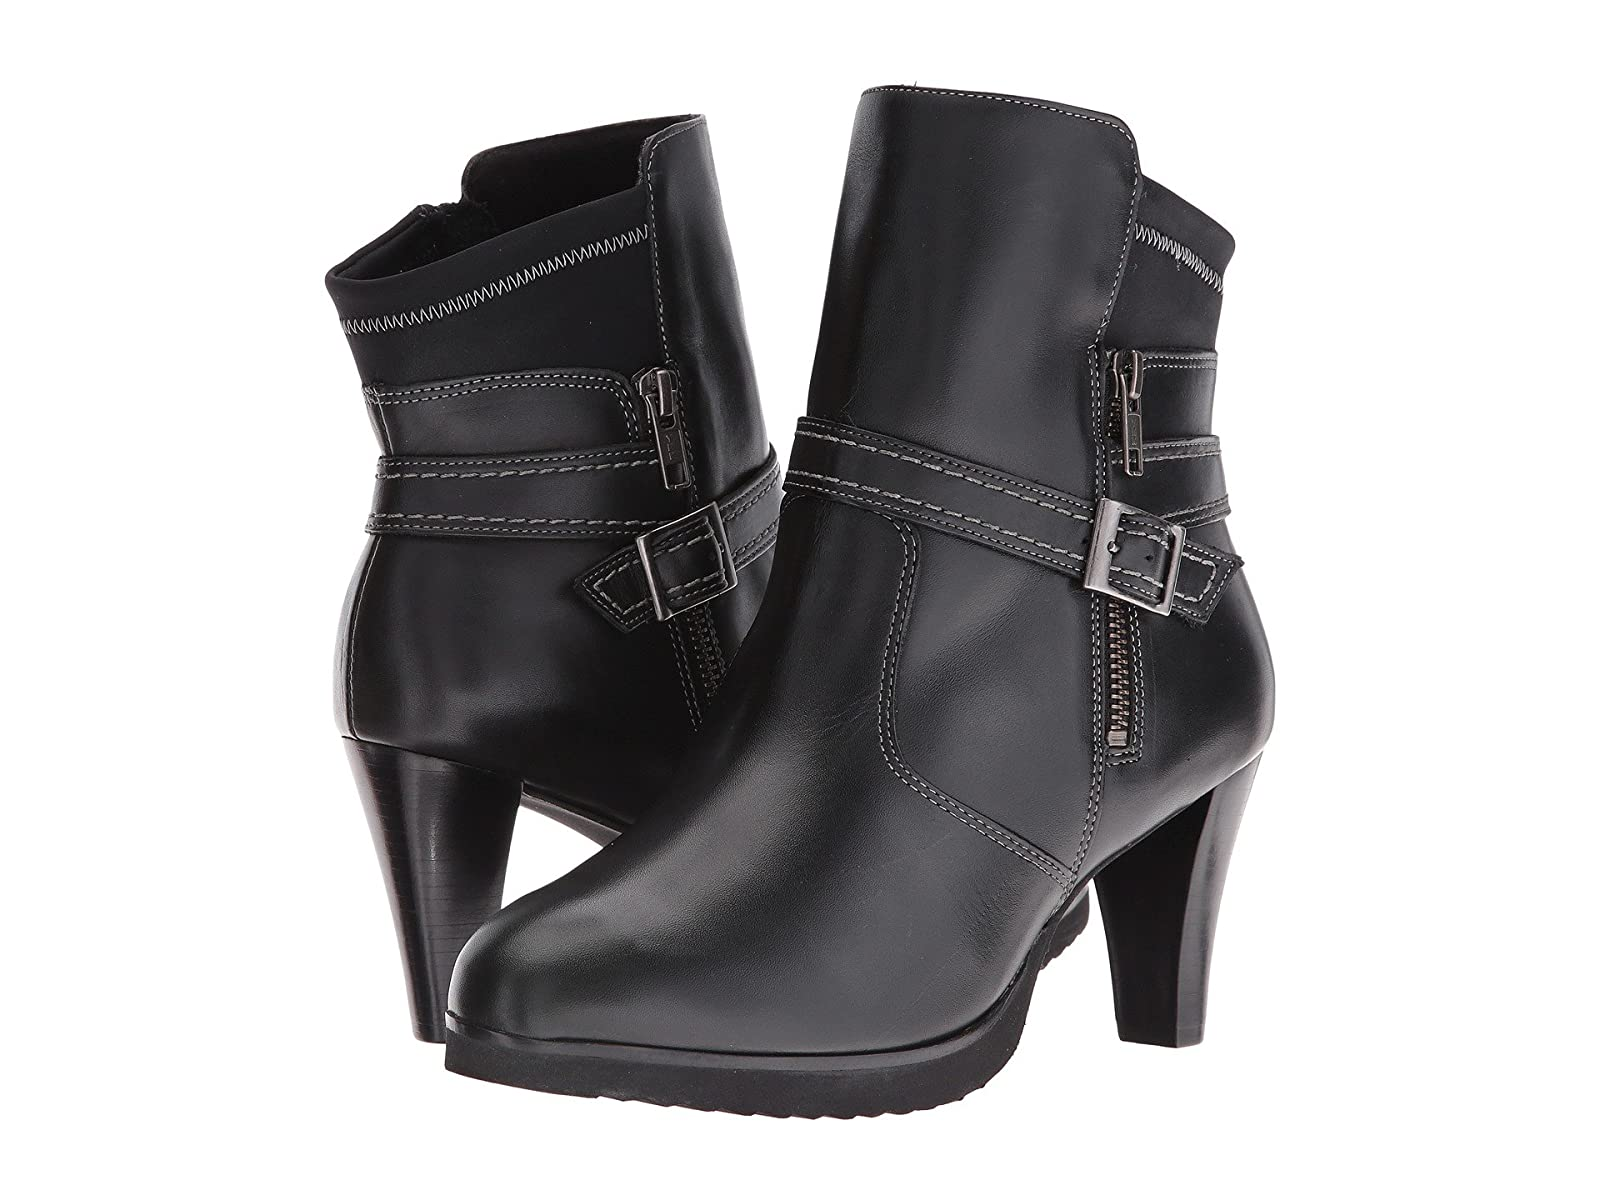 Walking Cradles TacomaCheap and distinctive eye-catching shoes